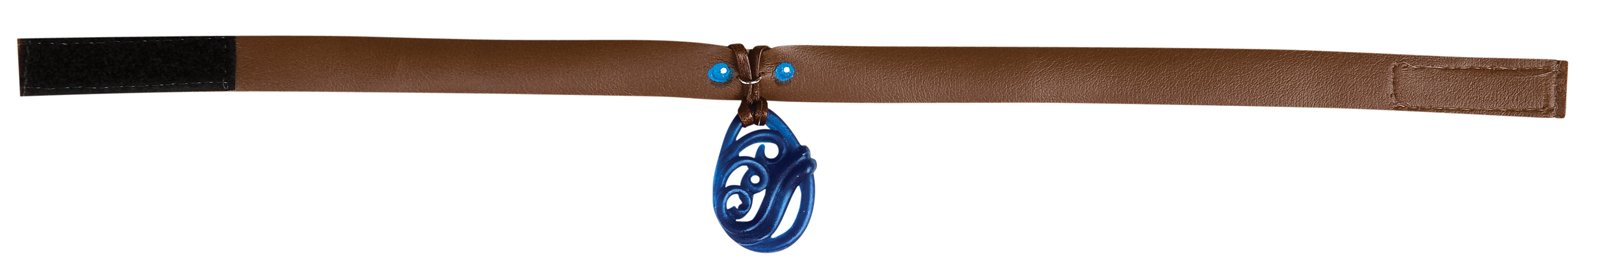 The Last Airbender-Katara Necklace